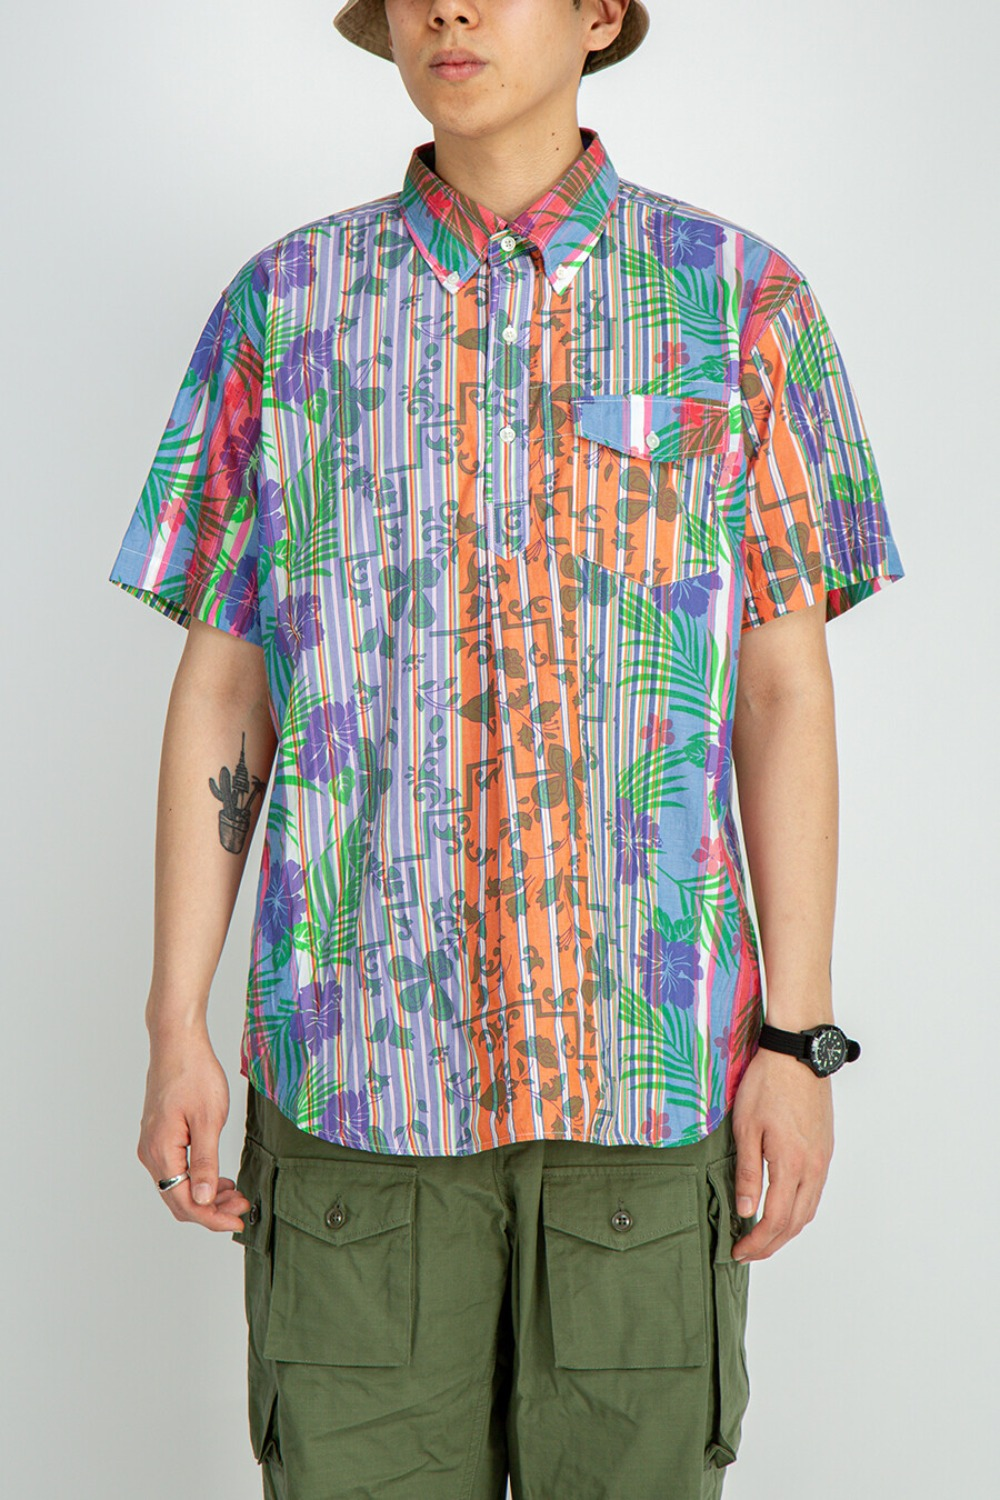 POPOVER BD SHIRT MULTI COLOR FLORAL PRINTED ON STRIPE MULTI